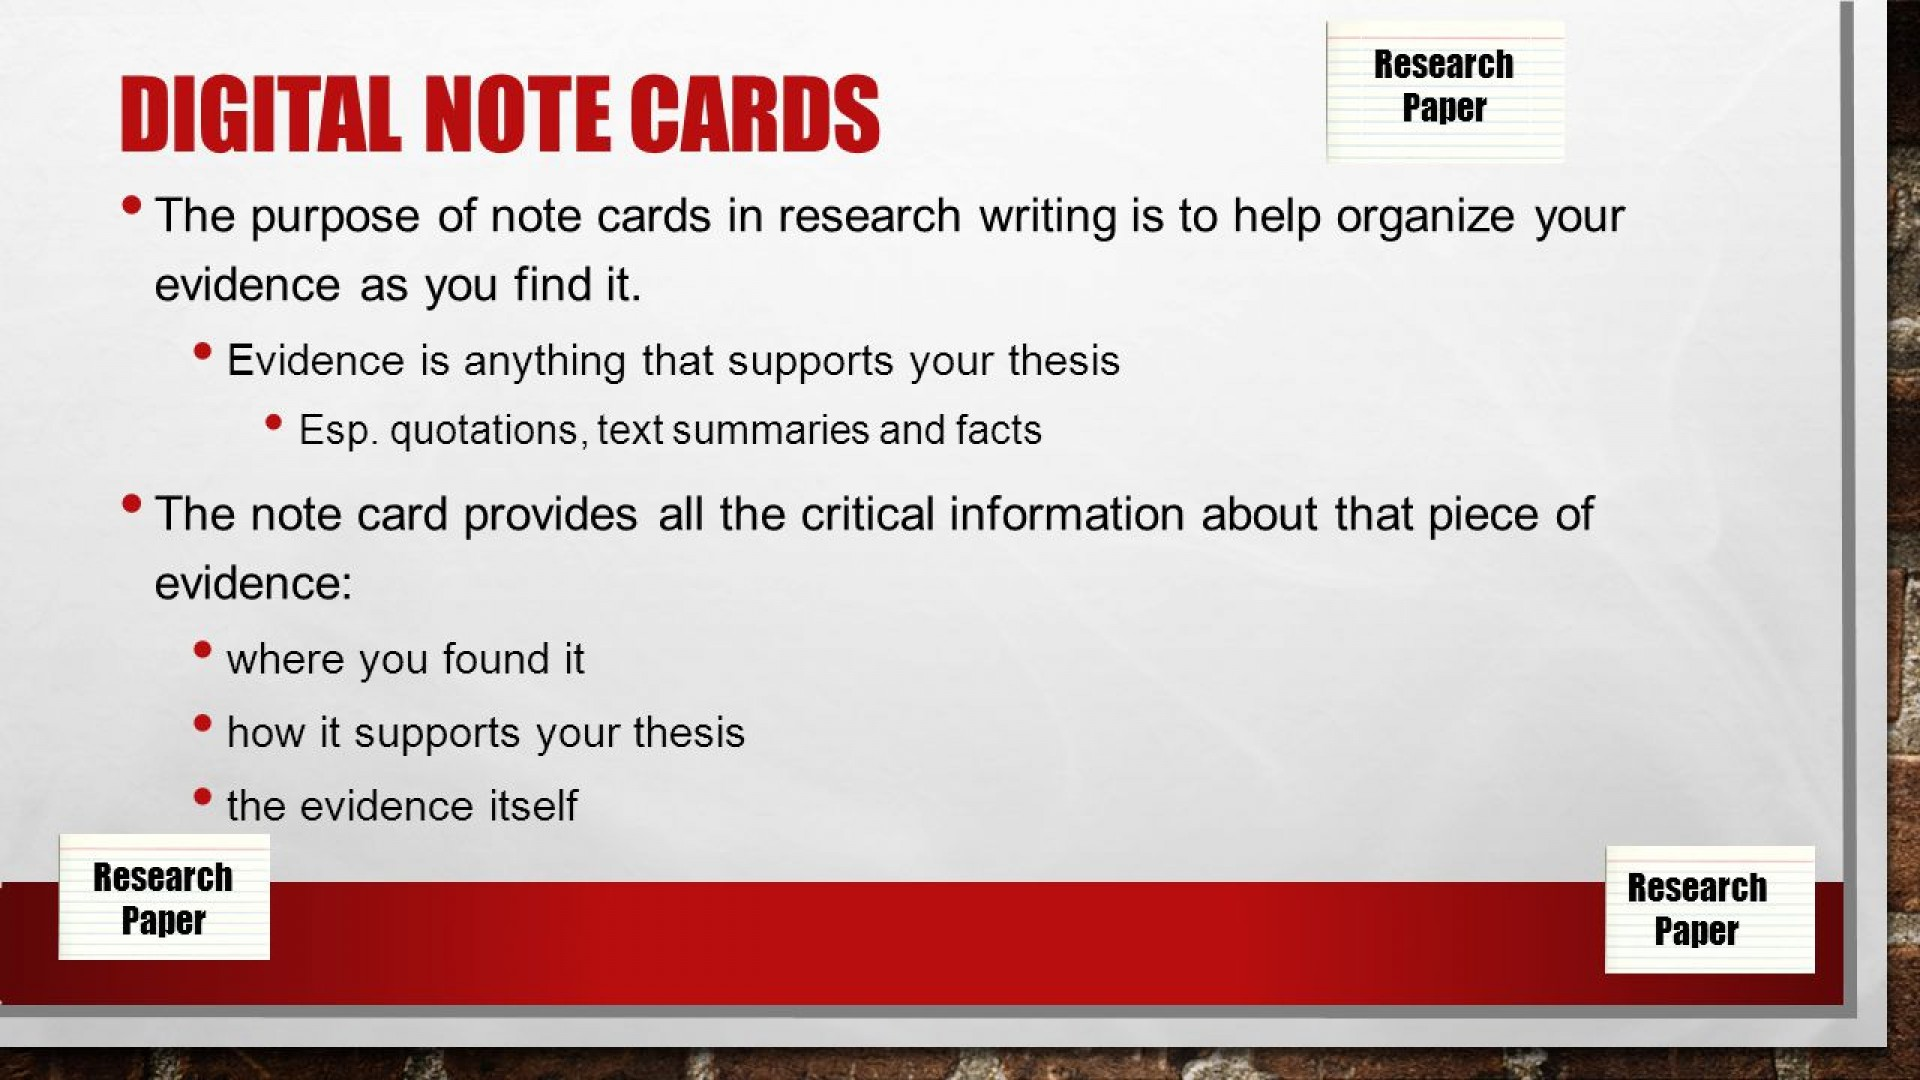 003 Slide 2 Notecards For Researchs Impressive Research Papers Sample Paper Mla Online How To Do 1920